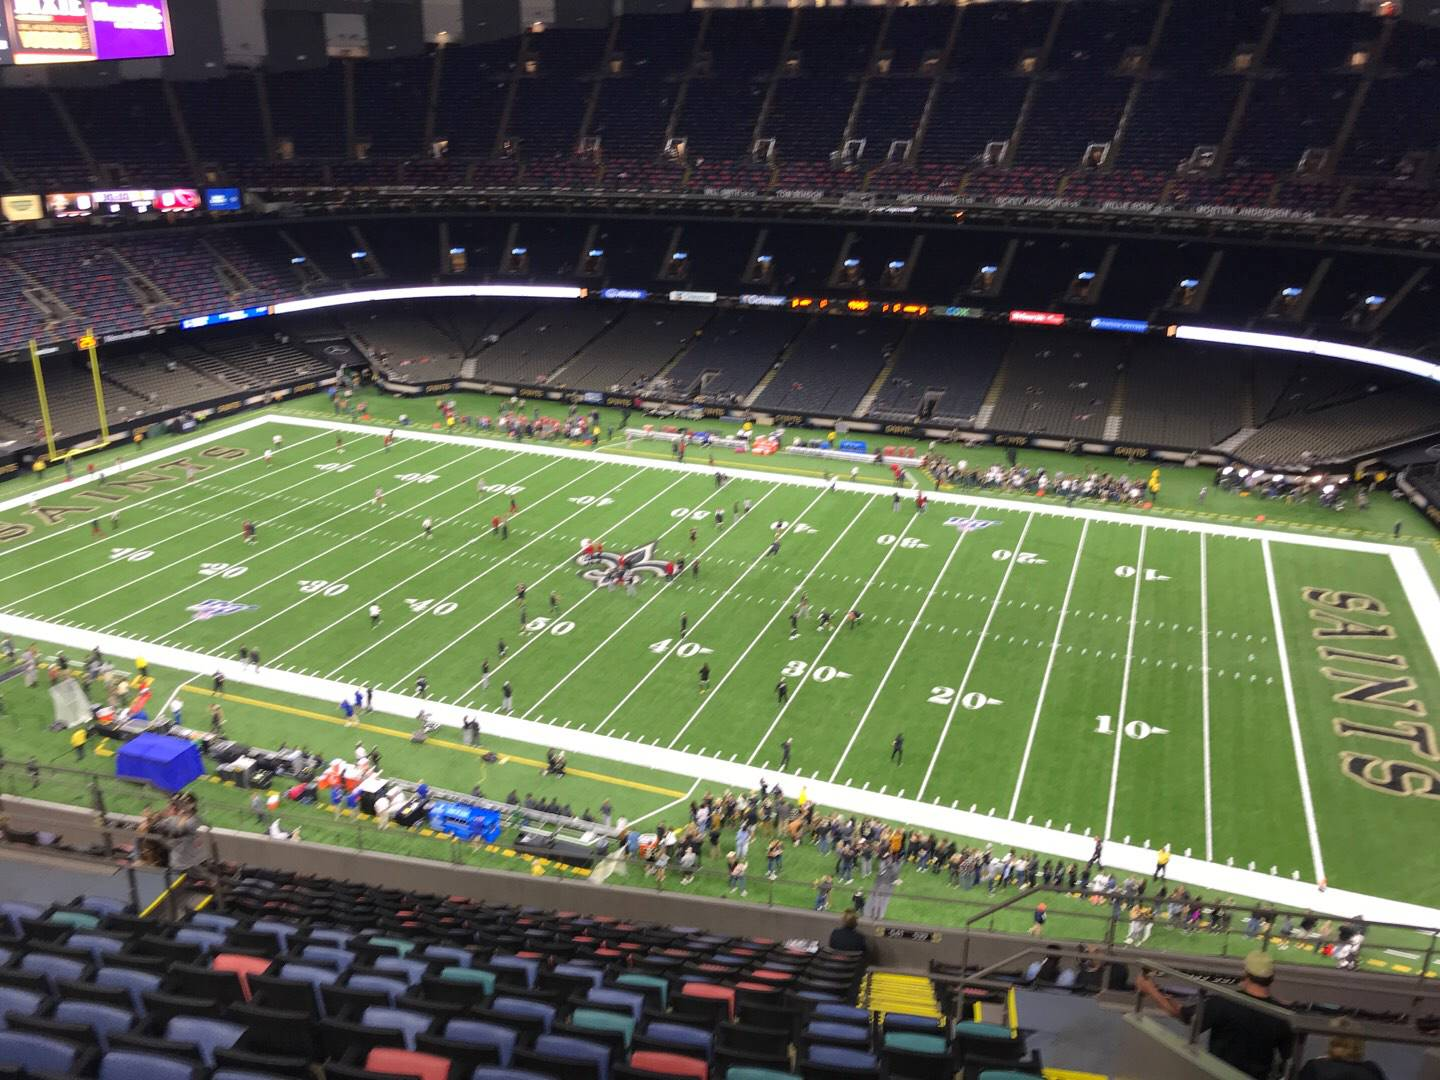 Mercedes-Benz Superdome Section 637 Row 17 Seat 8